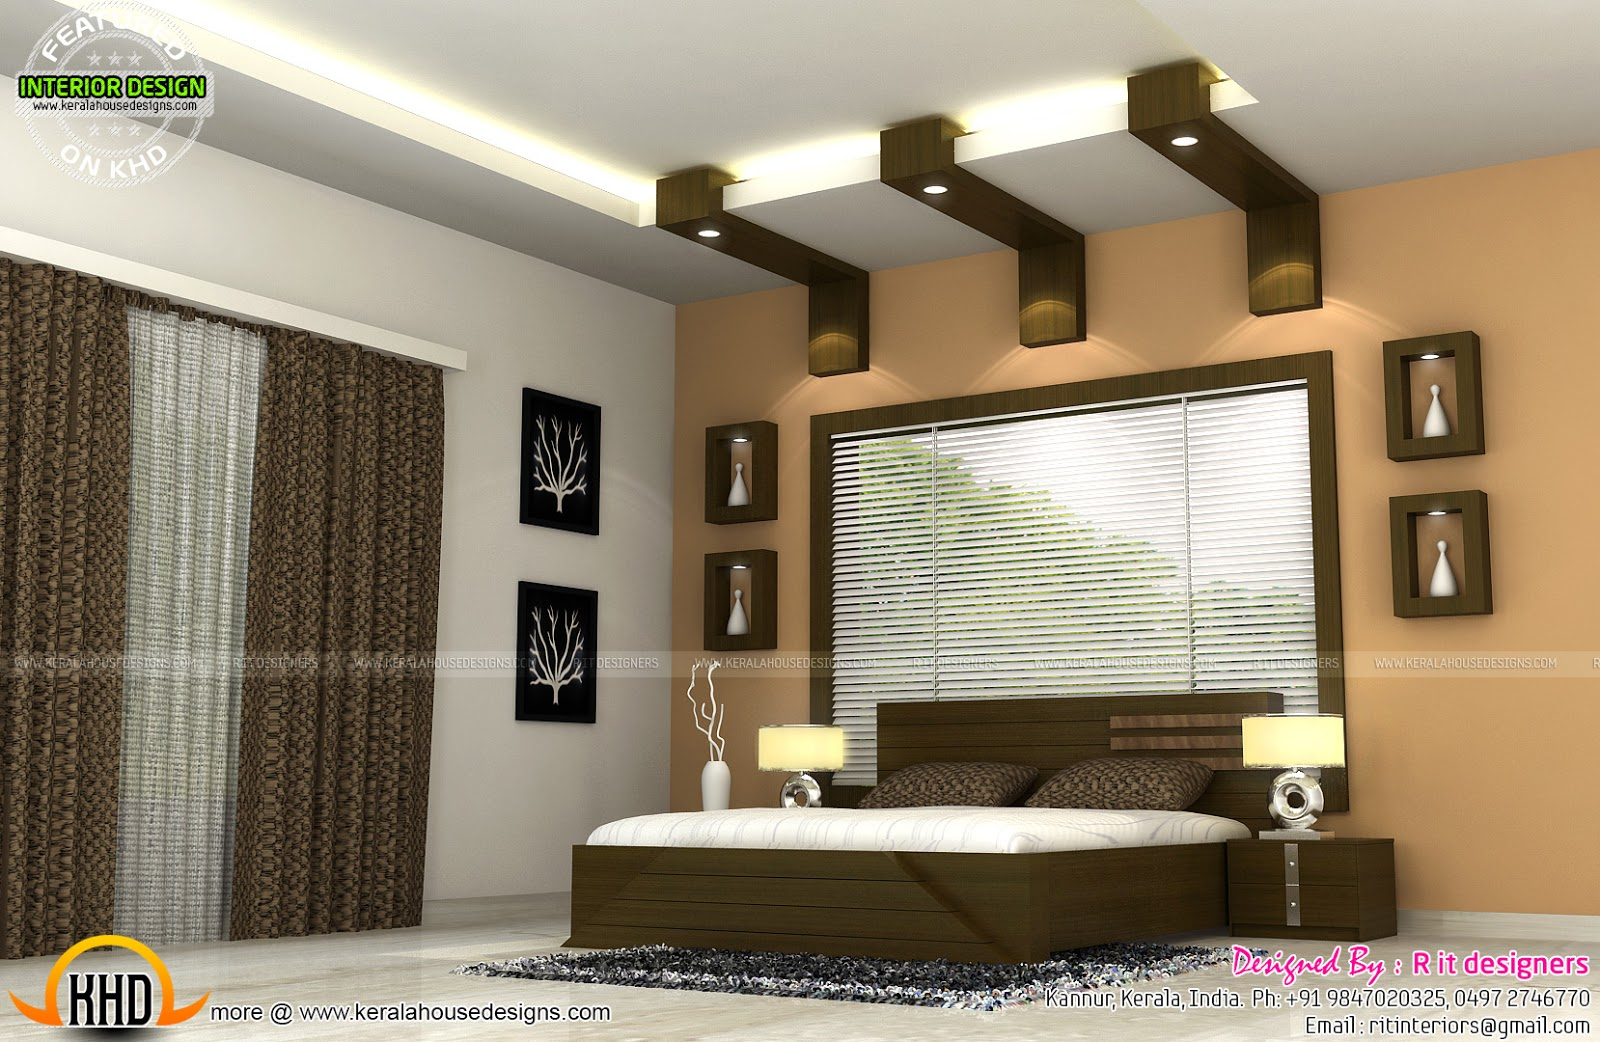 Interiors of bedrooms and kitchen kerala home design and Interiors for homes